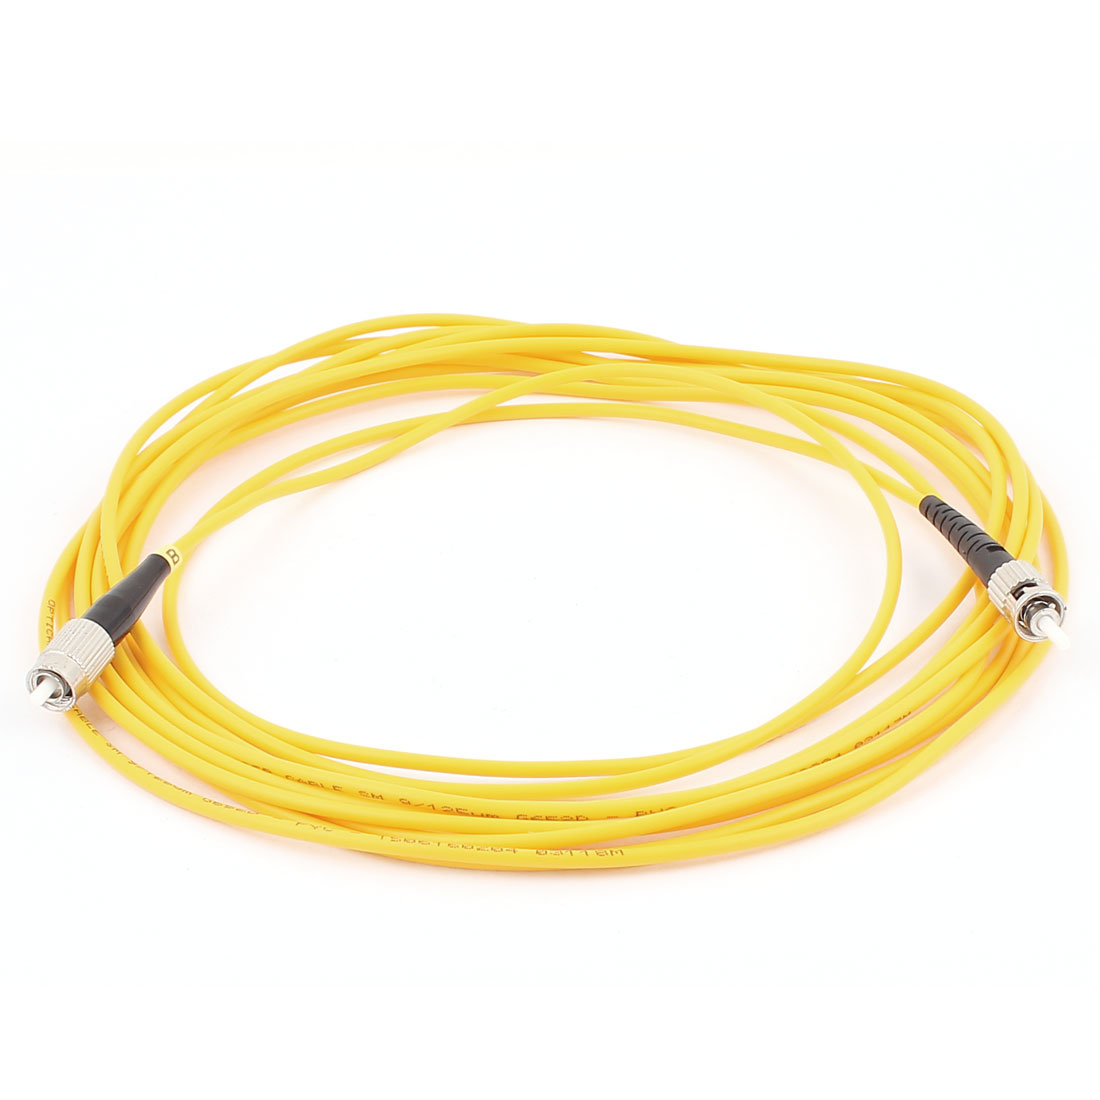 5M 9/125 Jumper Cable Simplex Singlemode FC-ST Fiber Optic Patch Cord